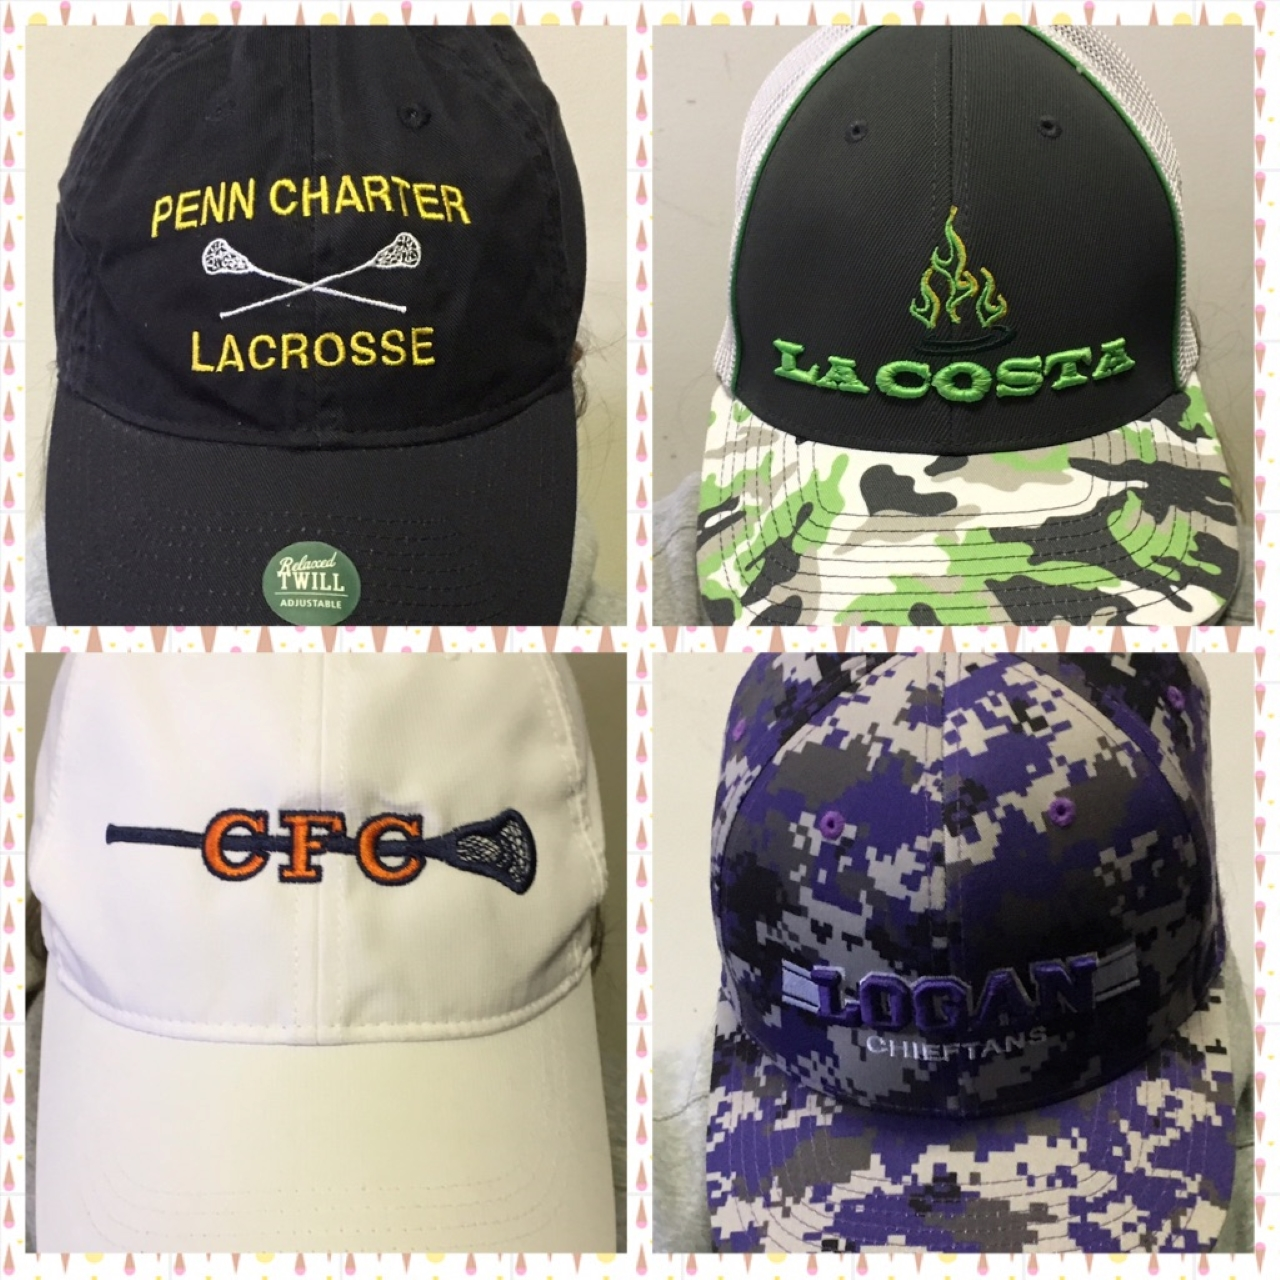 Lacrosse Trucker Hats are all the Rage